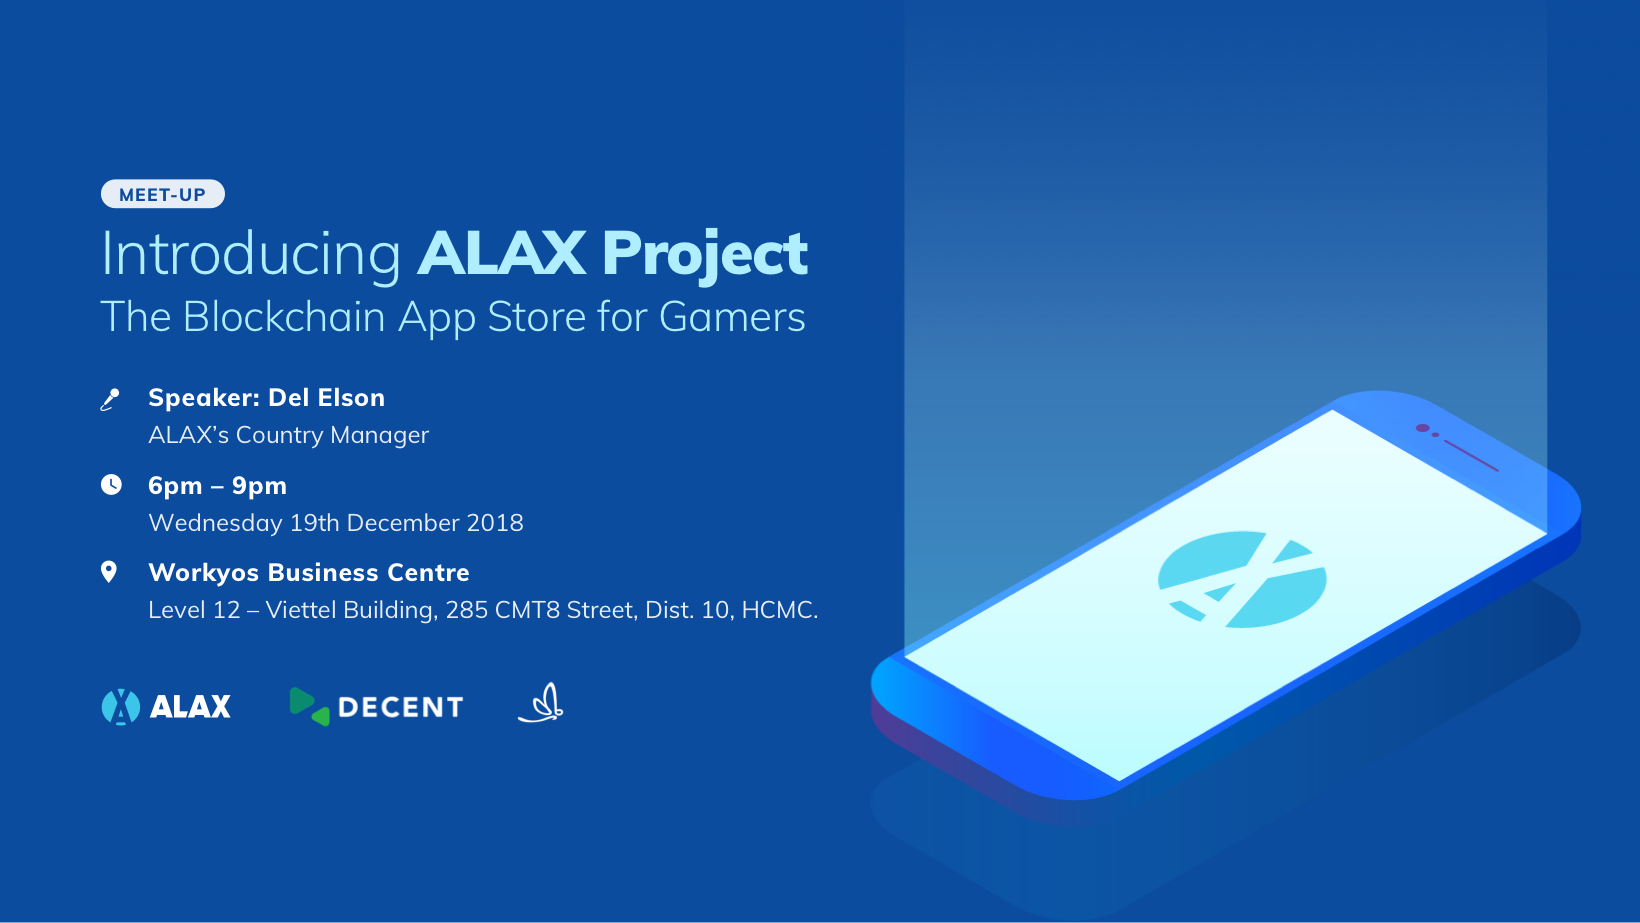 Meetup Introducing ALAX Project